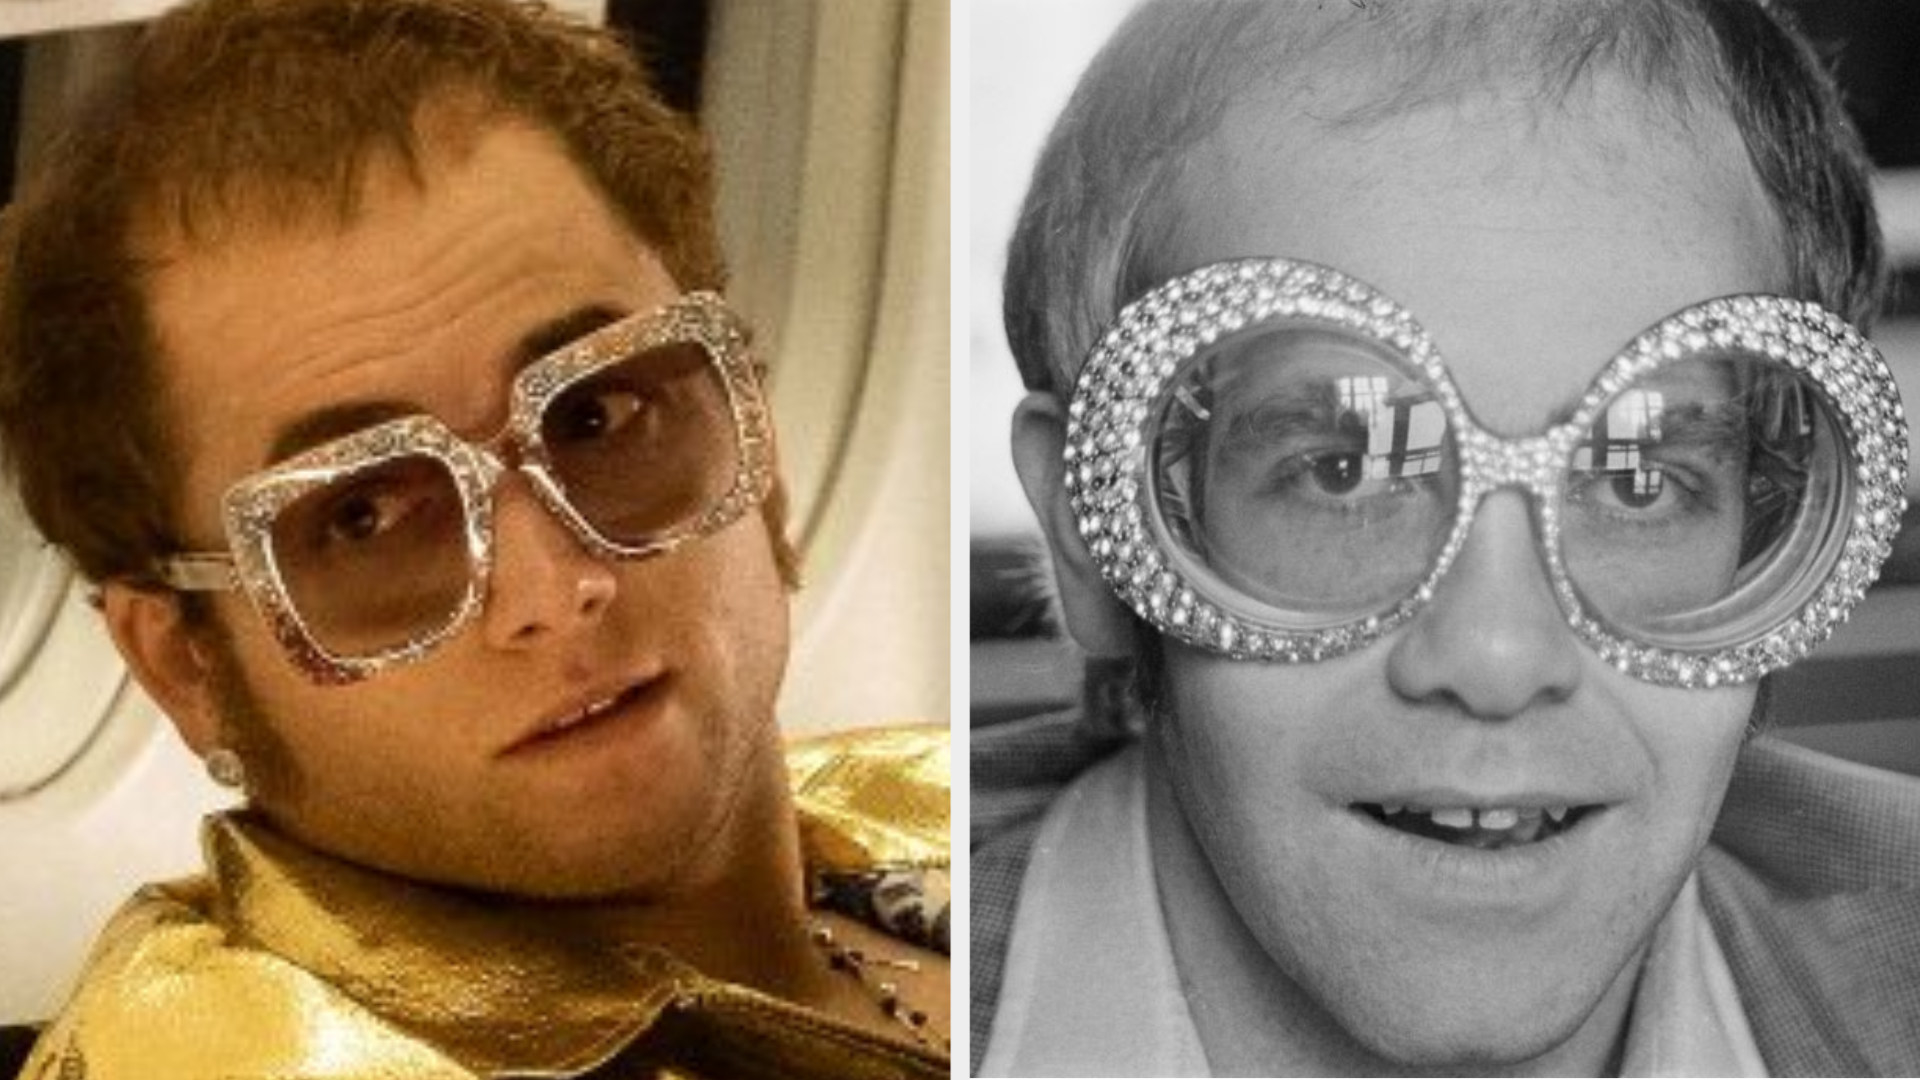 Taron Egerton as Elton John sitting on a plane, wearing oversized bejweled glasses, balding, with a serious expression on his face; Elton John posing for a picture with a sly grin, balding, wearing oversized bejeweled glasses